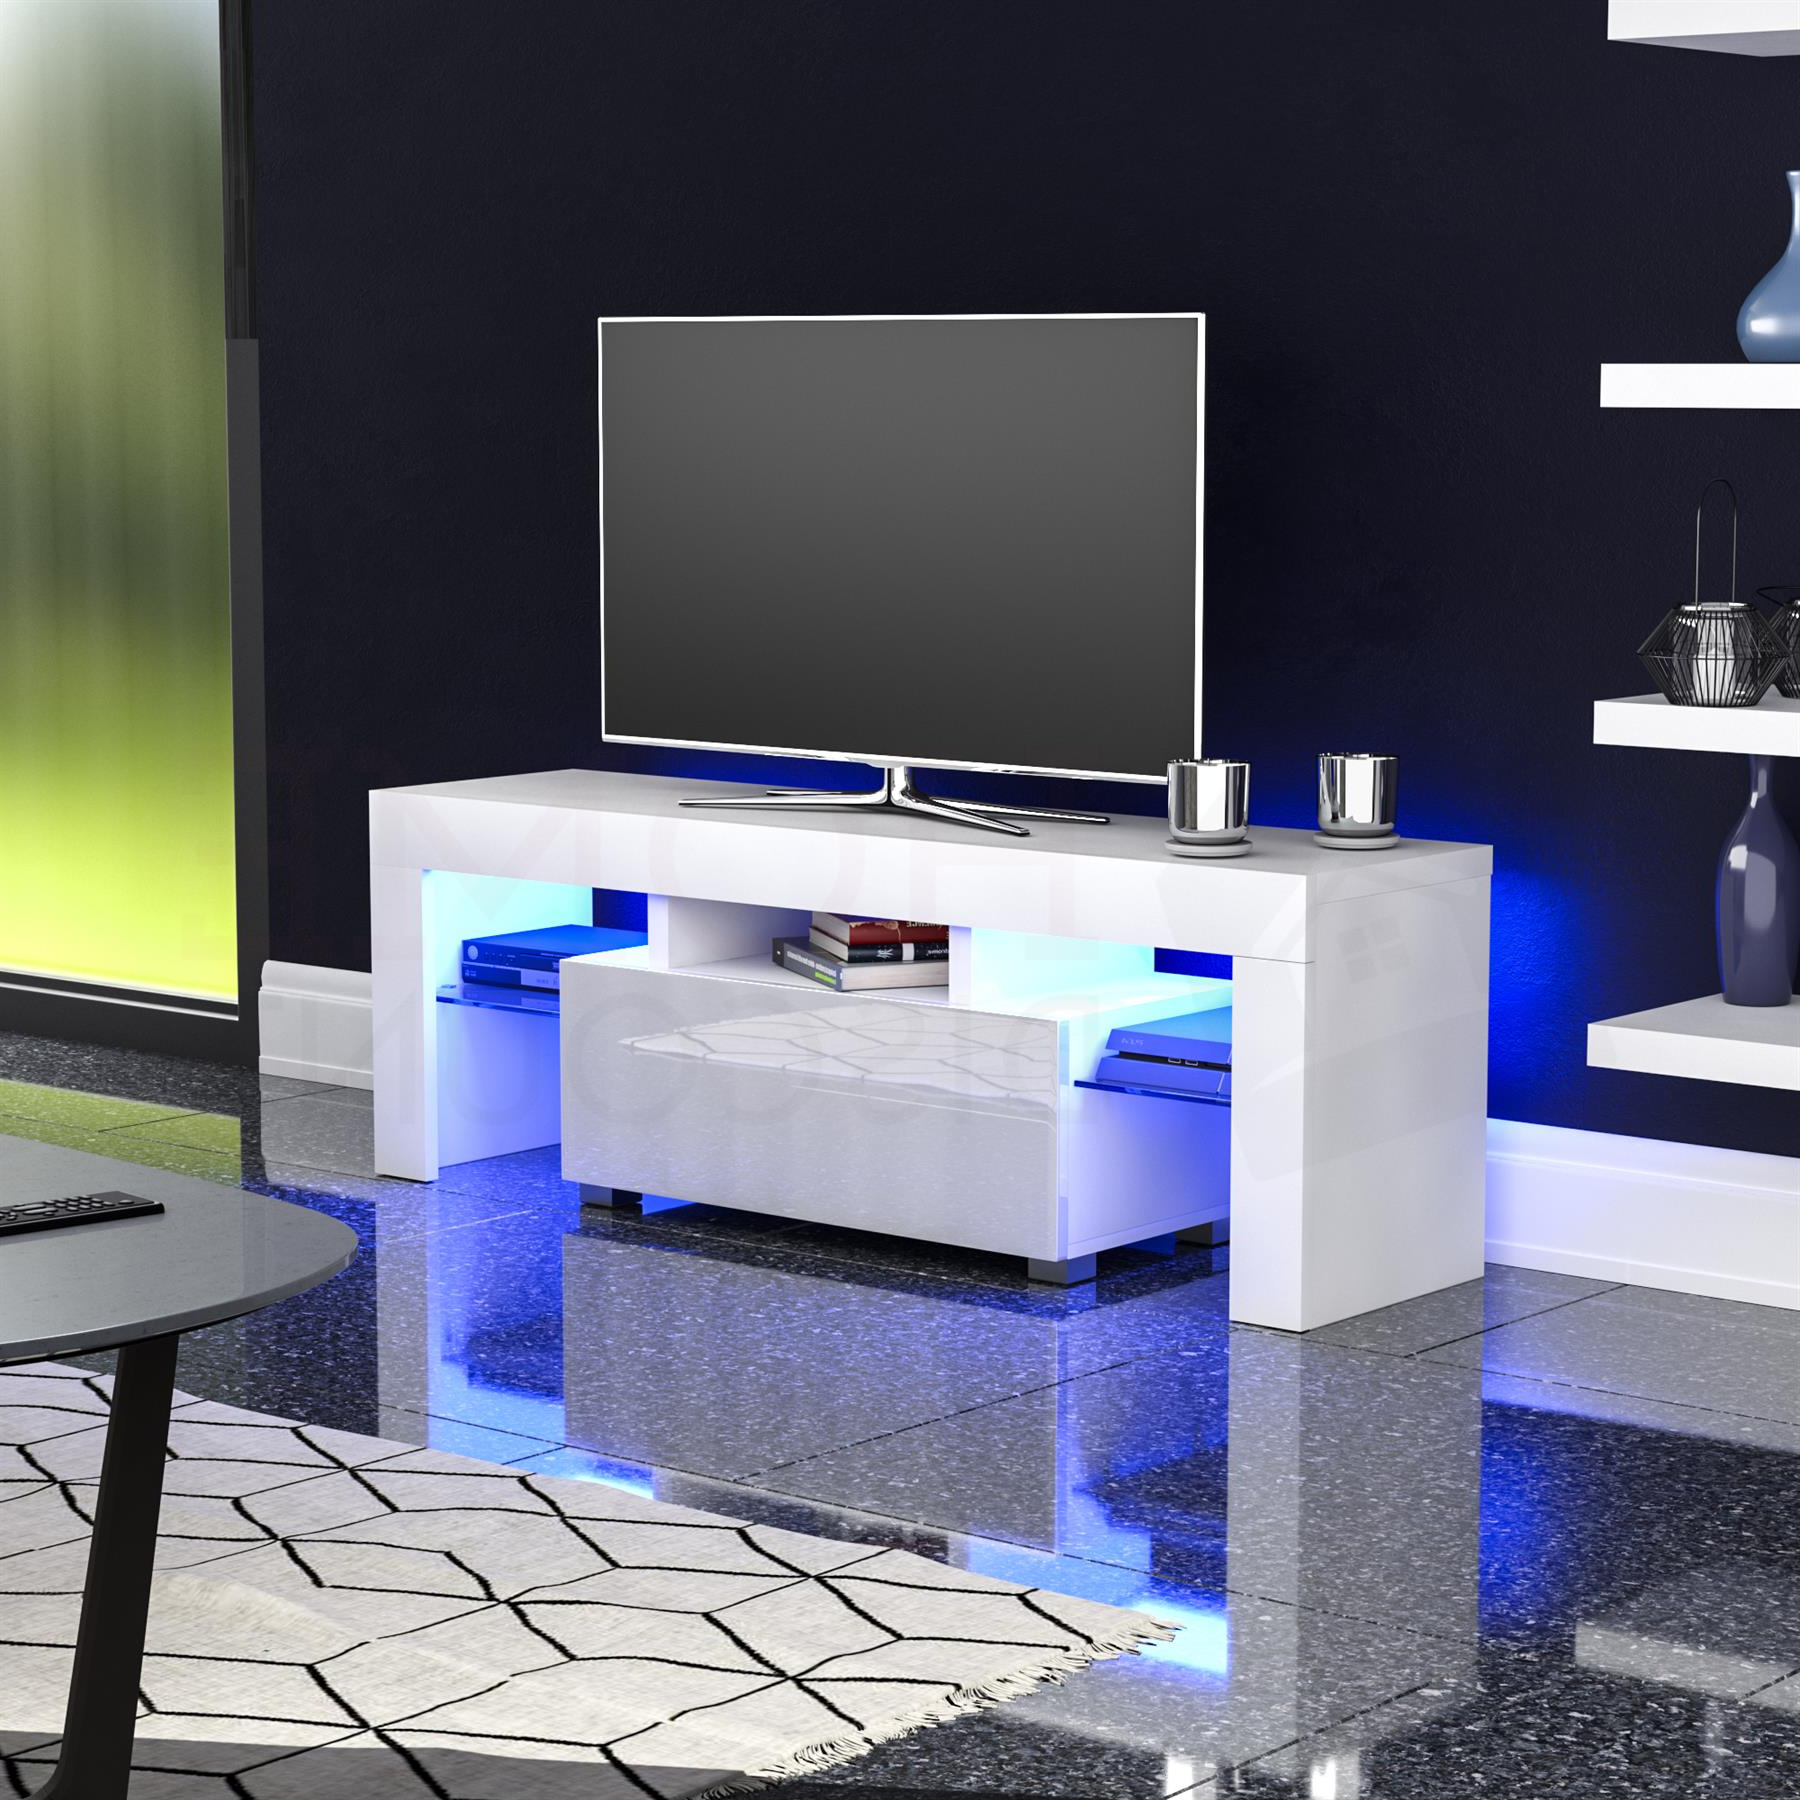 Zimtown Modern Tv Stands High Gloss Media Console Cabinet With Led Shelf And Drawers Regarding Latest Luna Led Tv Stand Cabinet Unit 1 Drawer Modern (View 3 of 10)